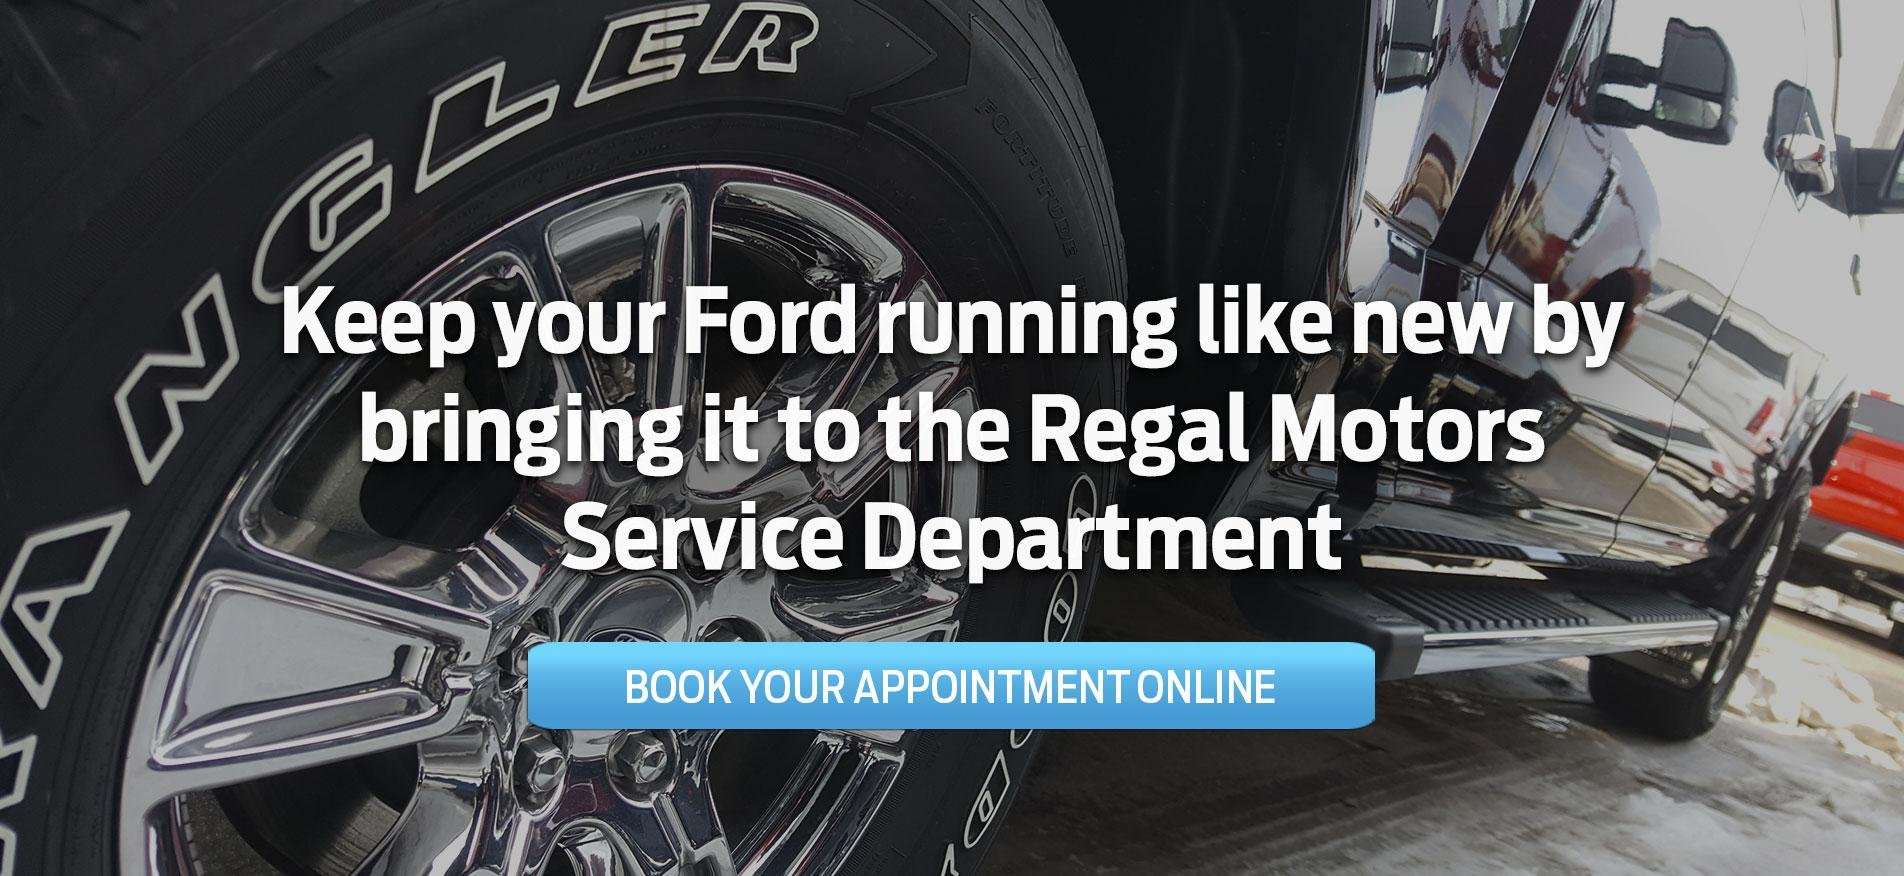 Regal Motors Service Department - Rosetown SK